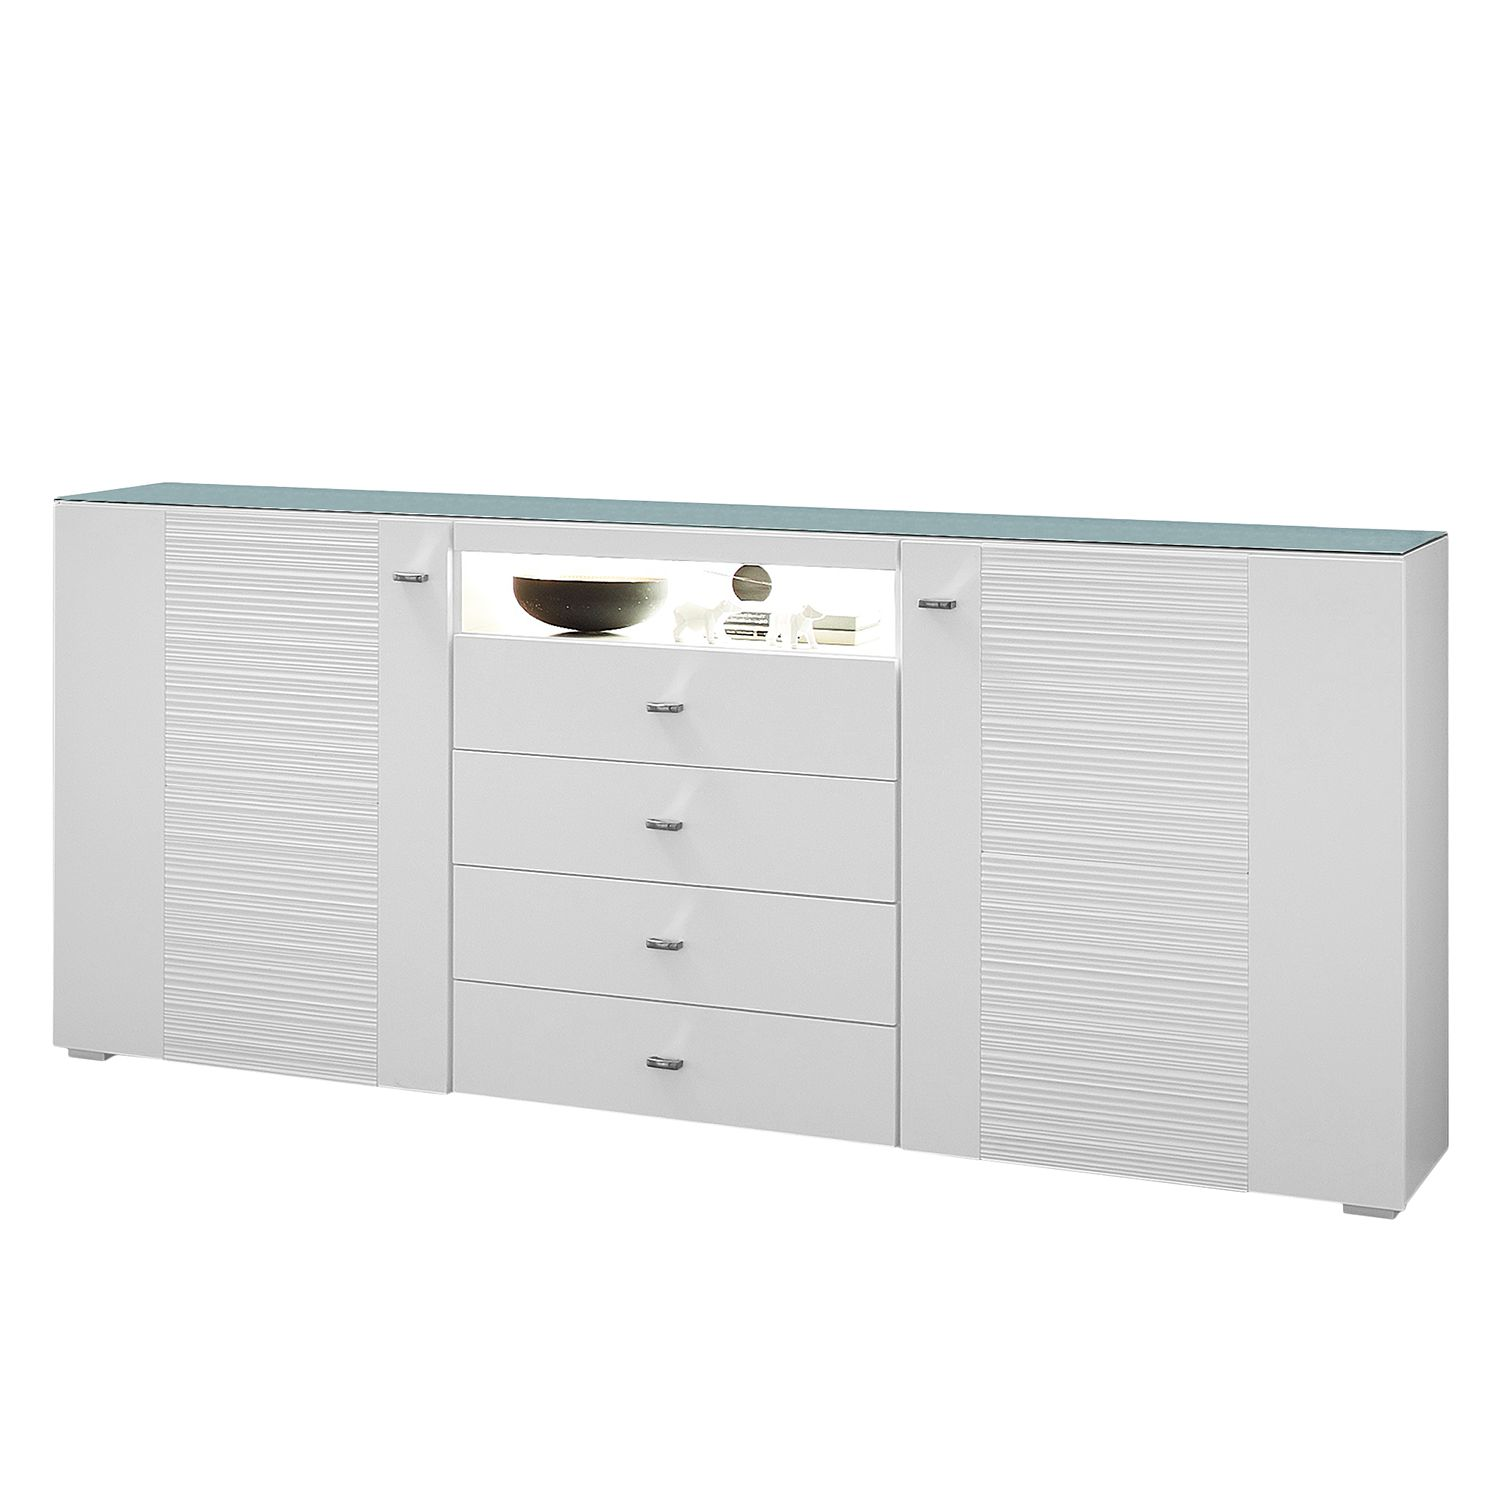 Sideboard Courban (inkl. Beleuchtung)